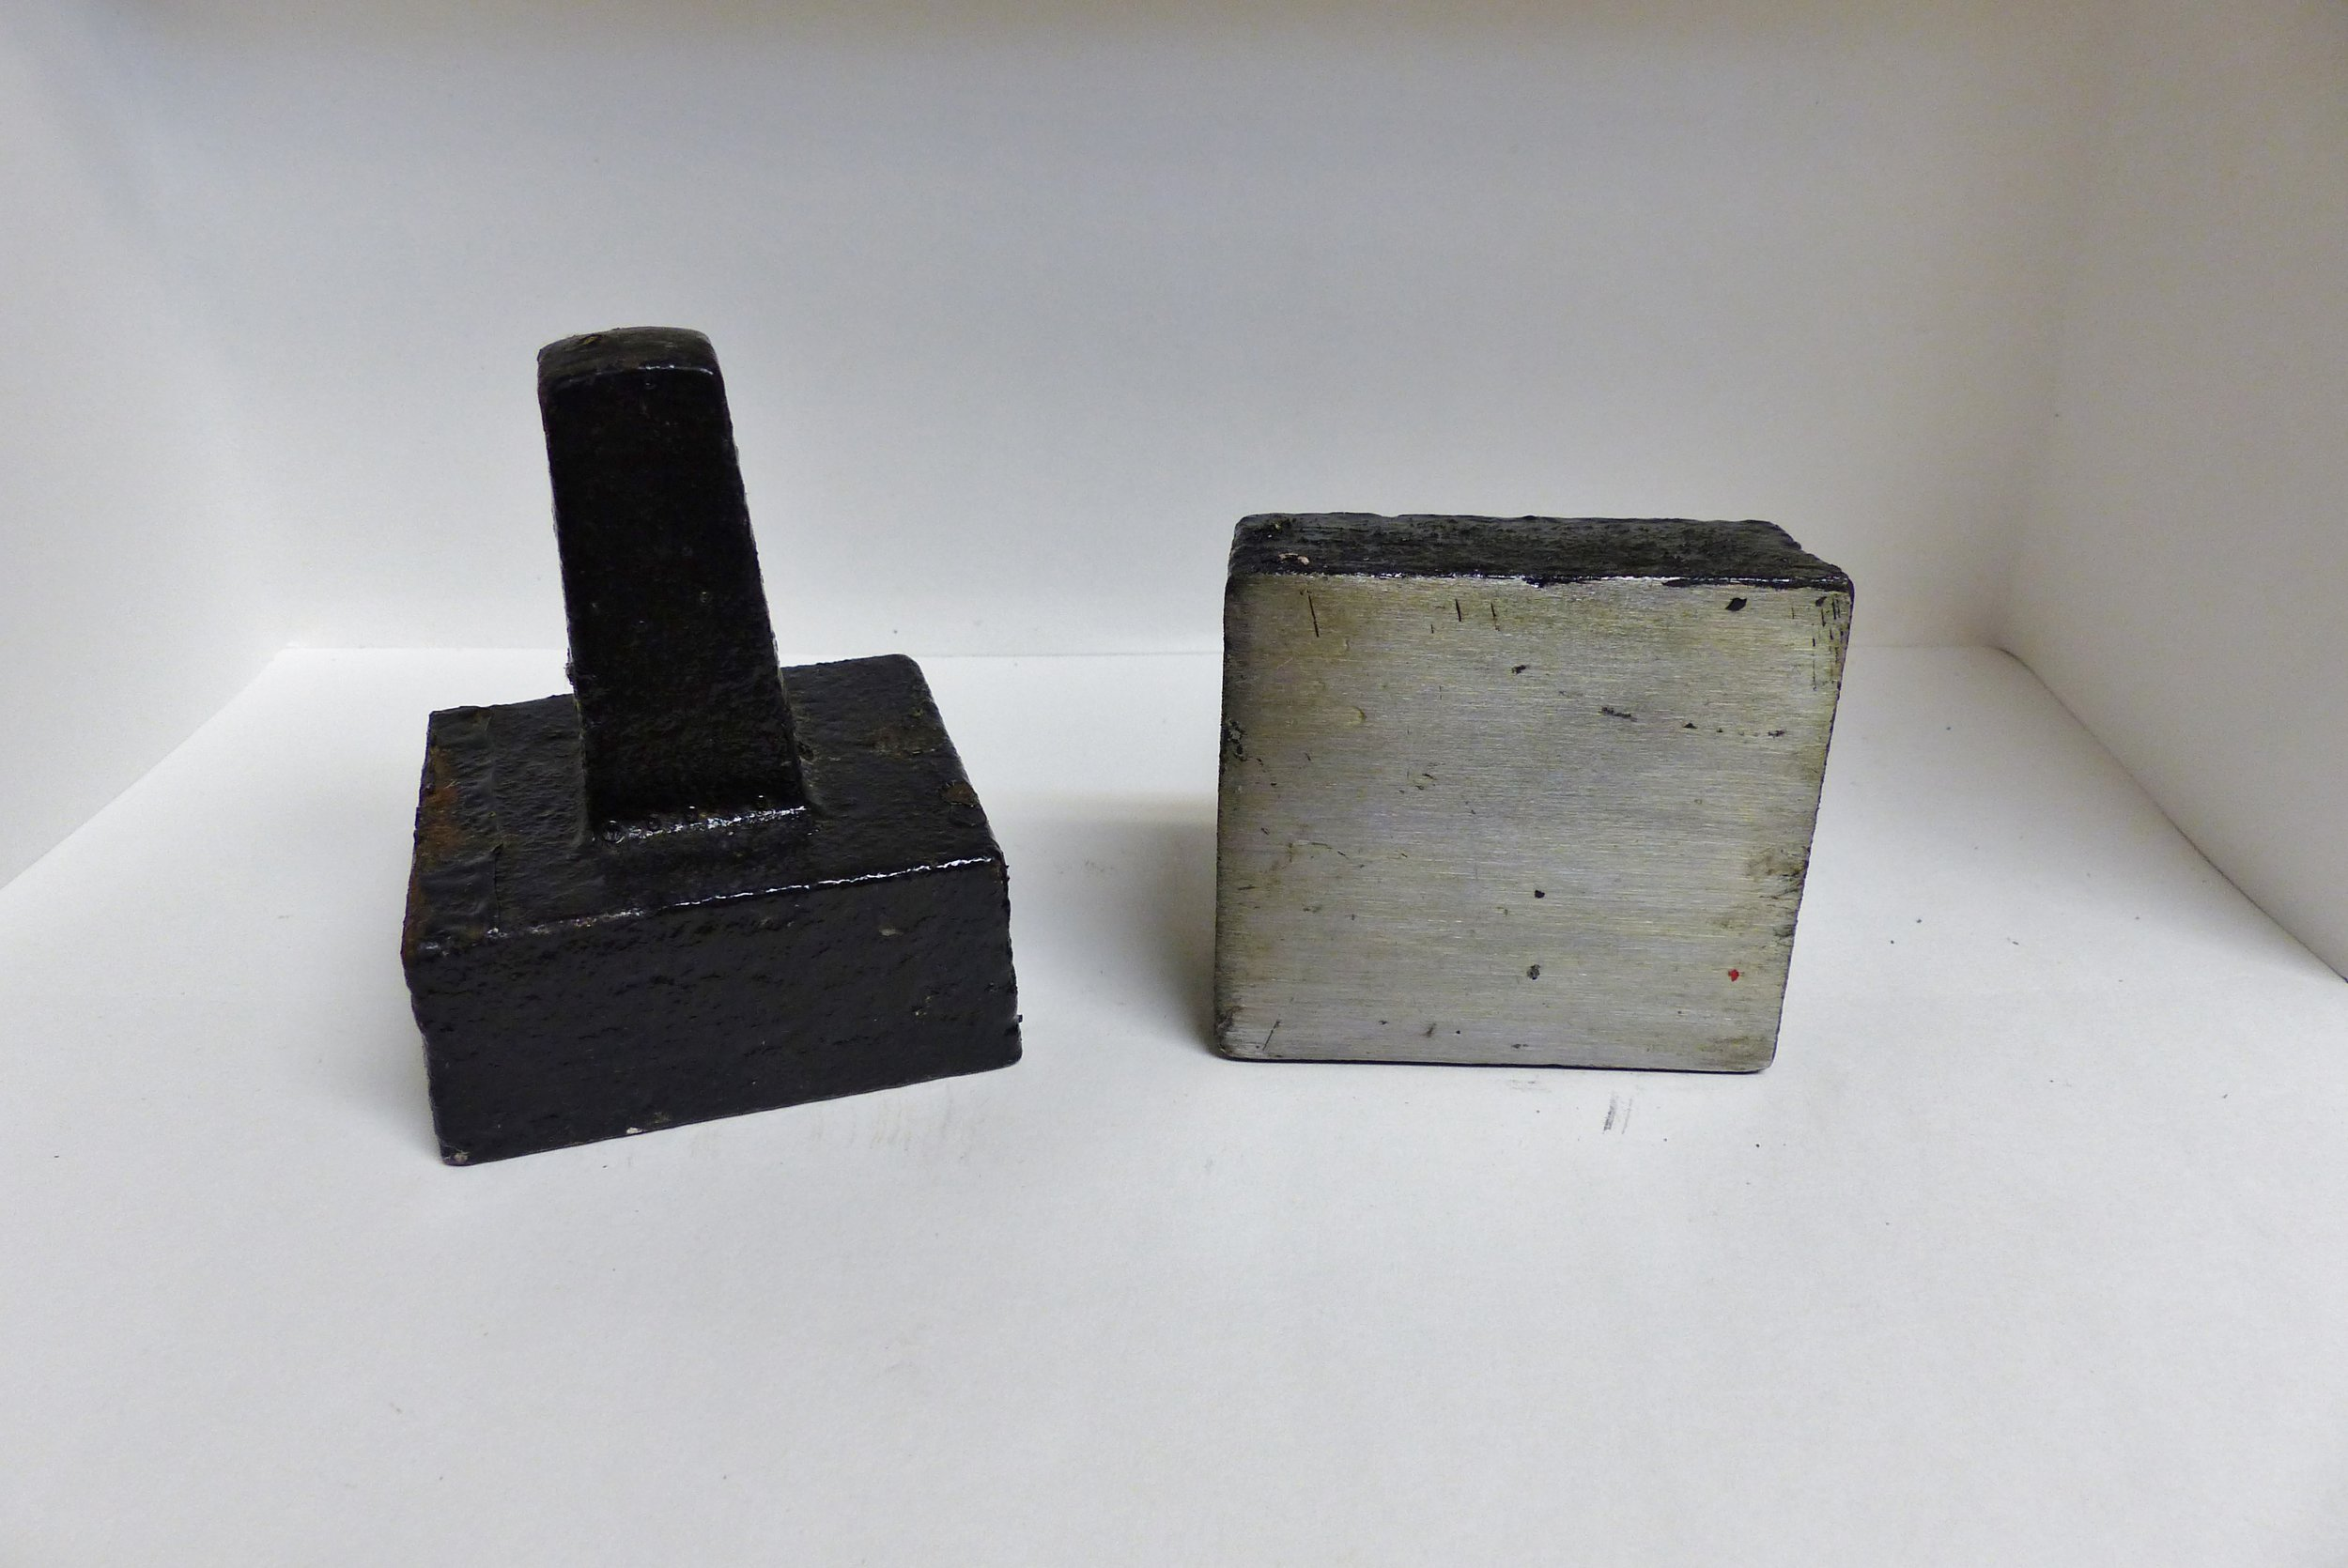 "Shorter Rectangular Stake Anvil   FACE: 2.5"" x 2.75"" THICKNESS: 1.8"" TANG LENGTH: 2.25"" STEM TAPER: 1"" under face to 3/4"" square at bottom WEIGHT: 2 lbs. PRICE: $58.00  FREE shipping anywhere in the USA! Delivered by USPS Priority Mail  Toll Free Order Line: 888-737-5714"